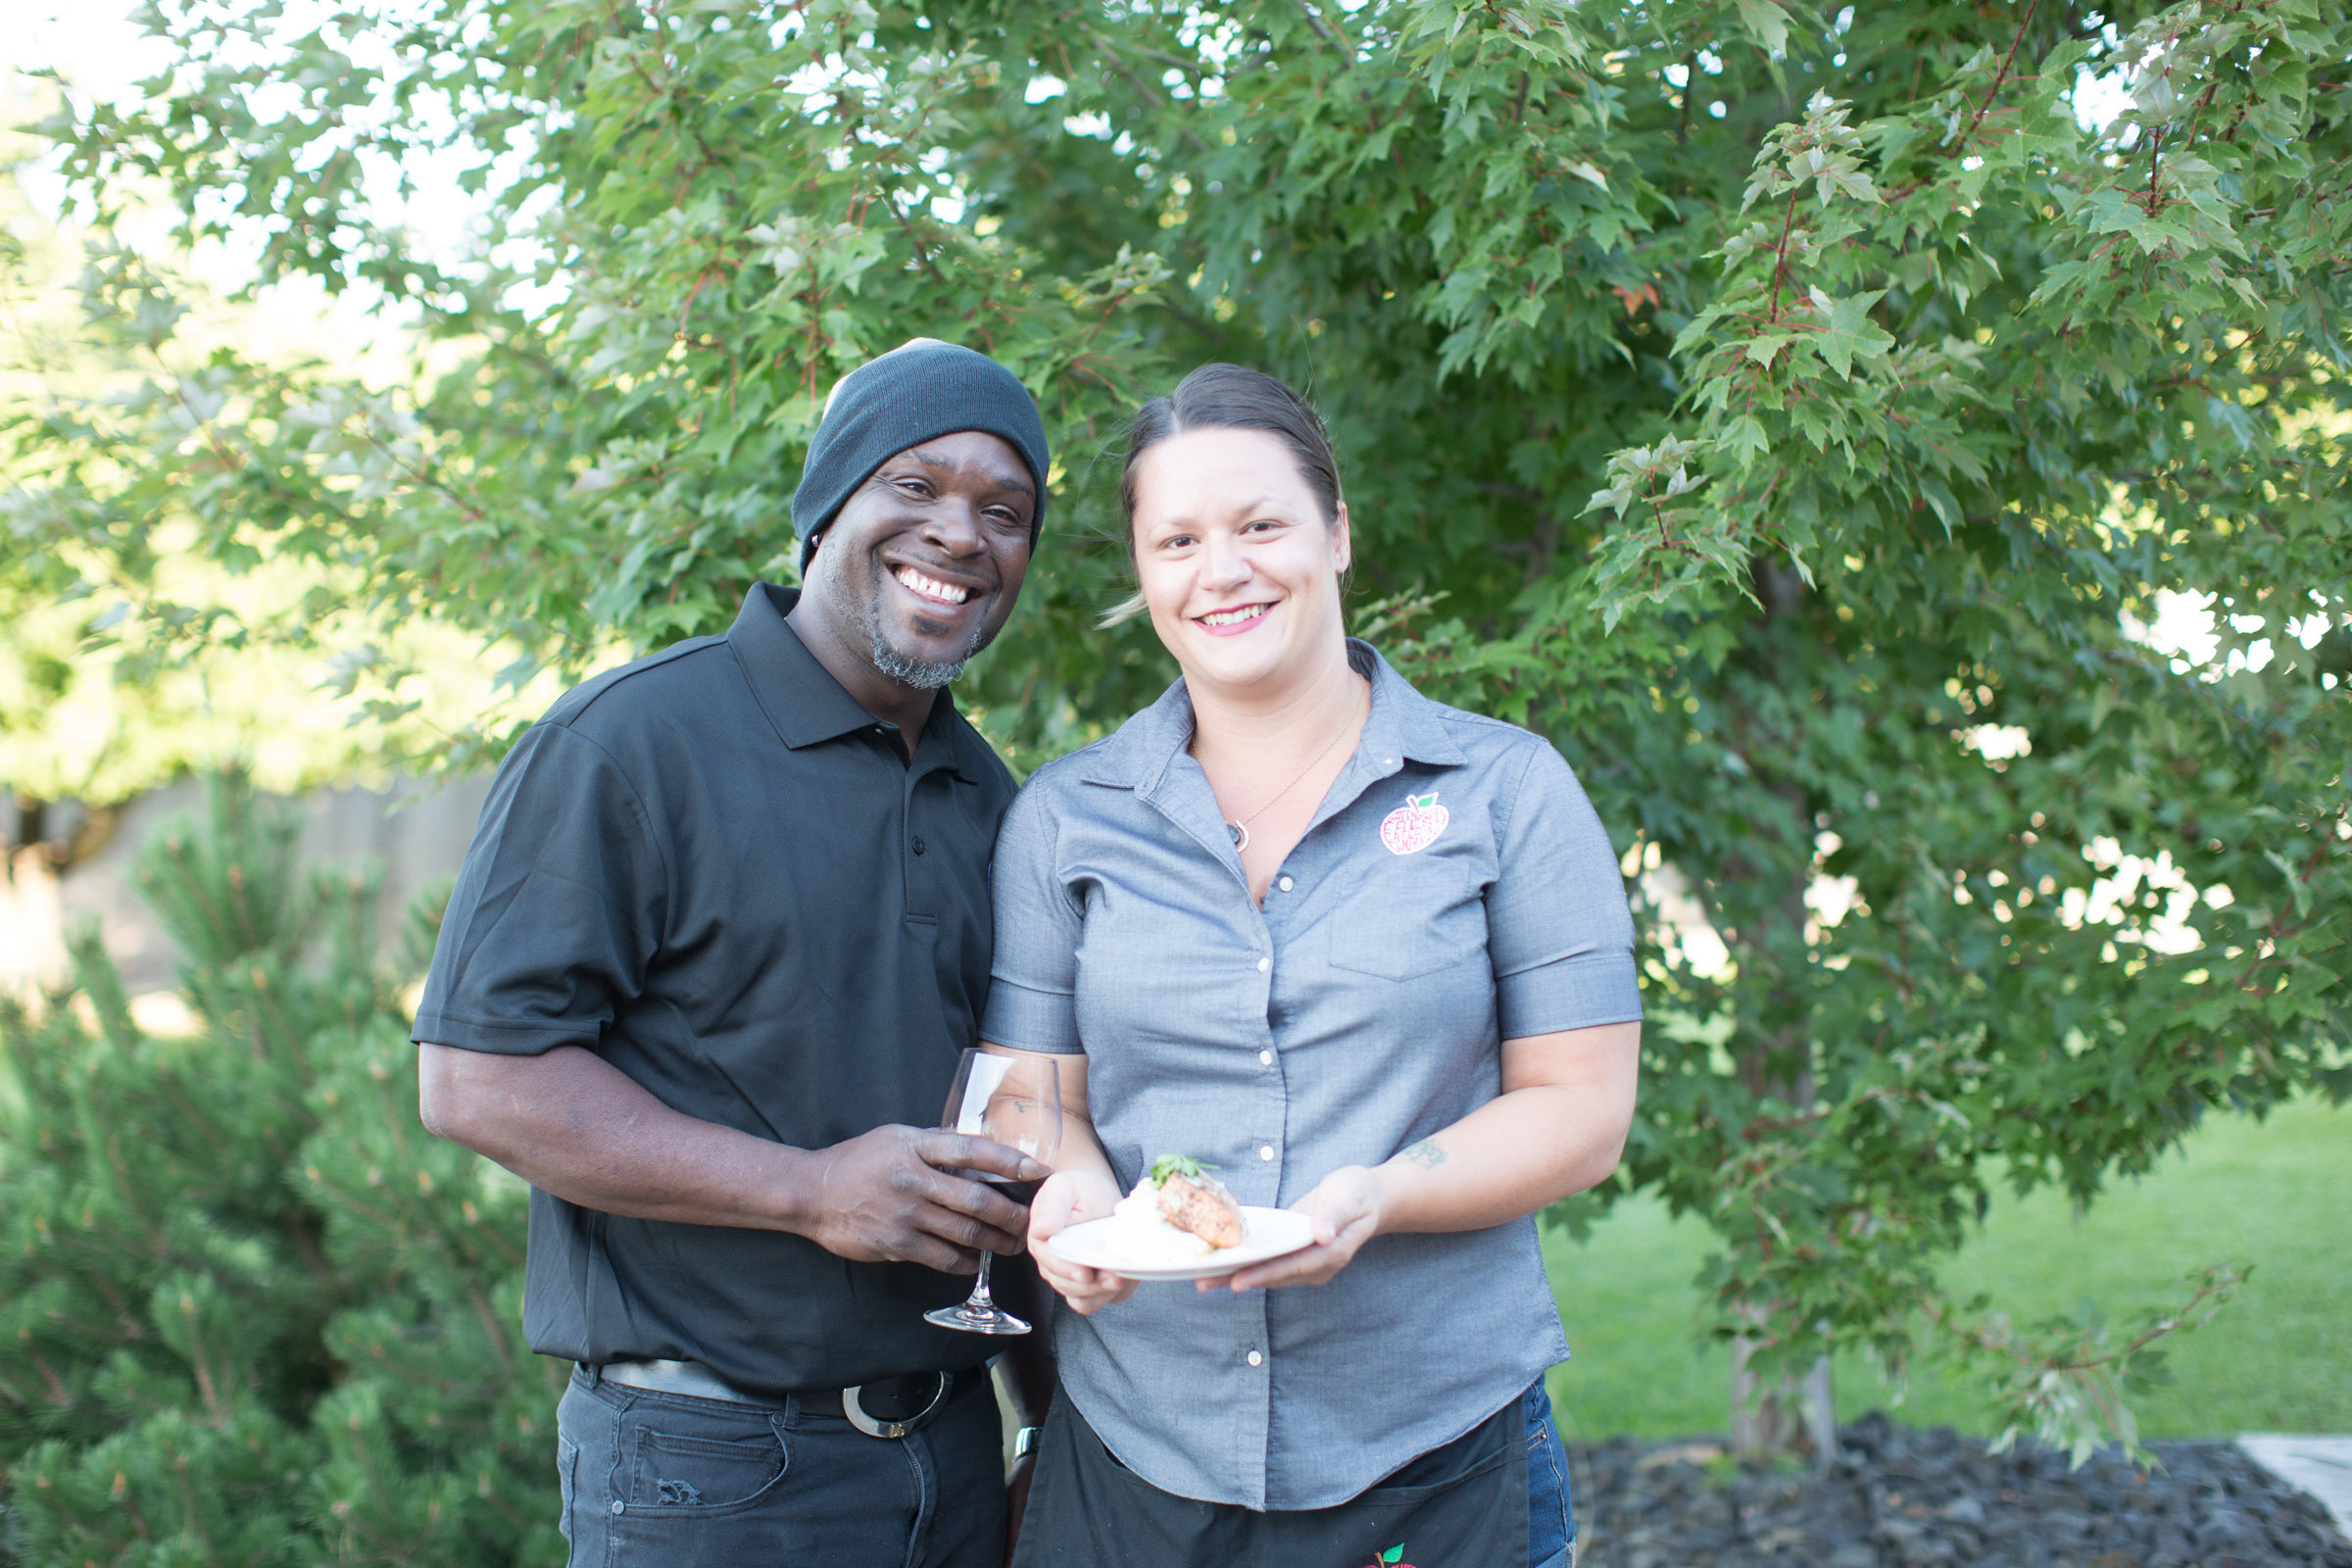 Rioan and Sabrina, owners of Greenbluff Fresh Catering Company